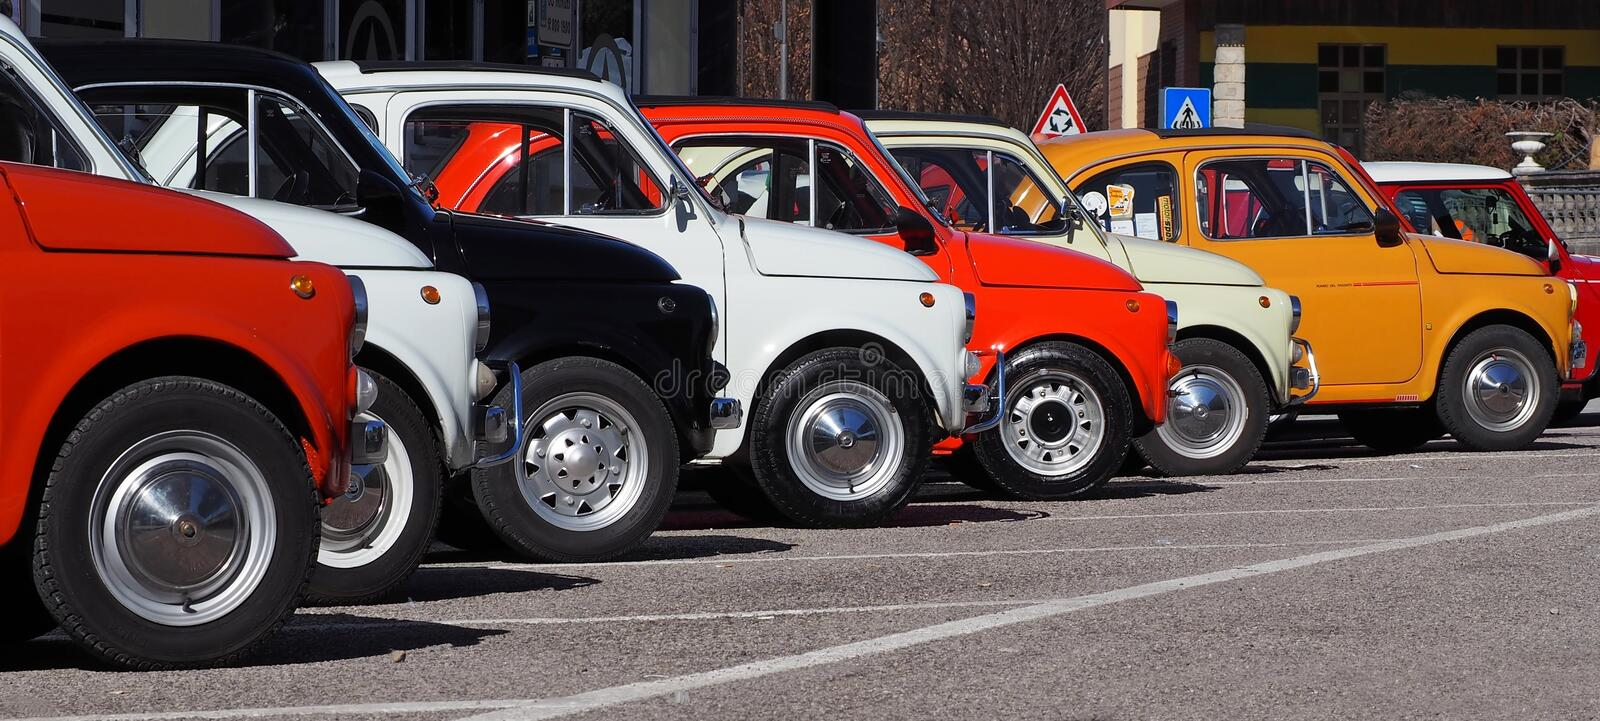 A row of colorful Fiat 500s  in a roadside parking lot, waiting to participate in an auto gathering later stock photo